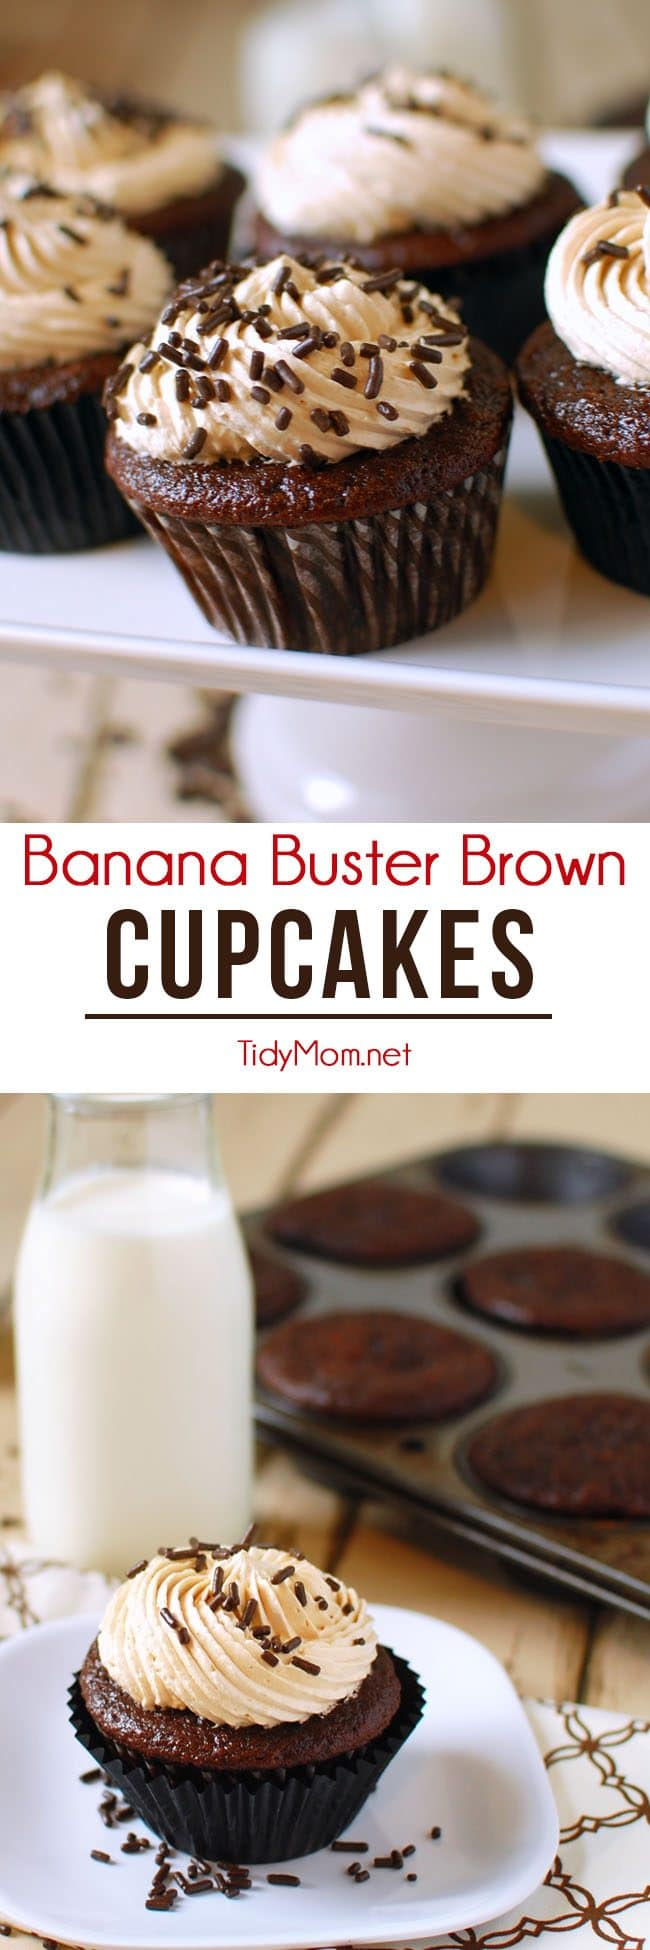 Banana Chocolate Cupcakes with Peanut Butter Frosting = Banana Buster Brown Cupcakes recipe at TidyMom.net